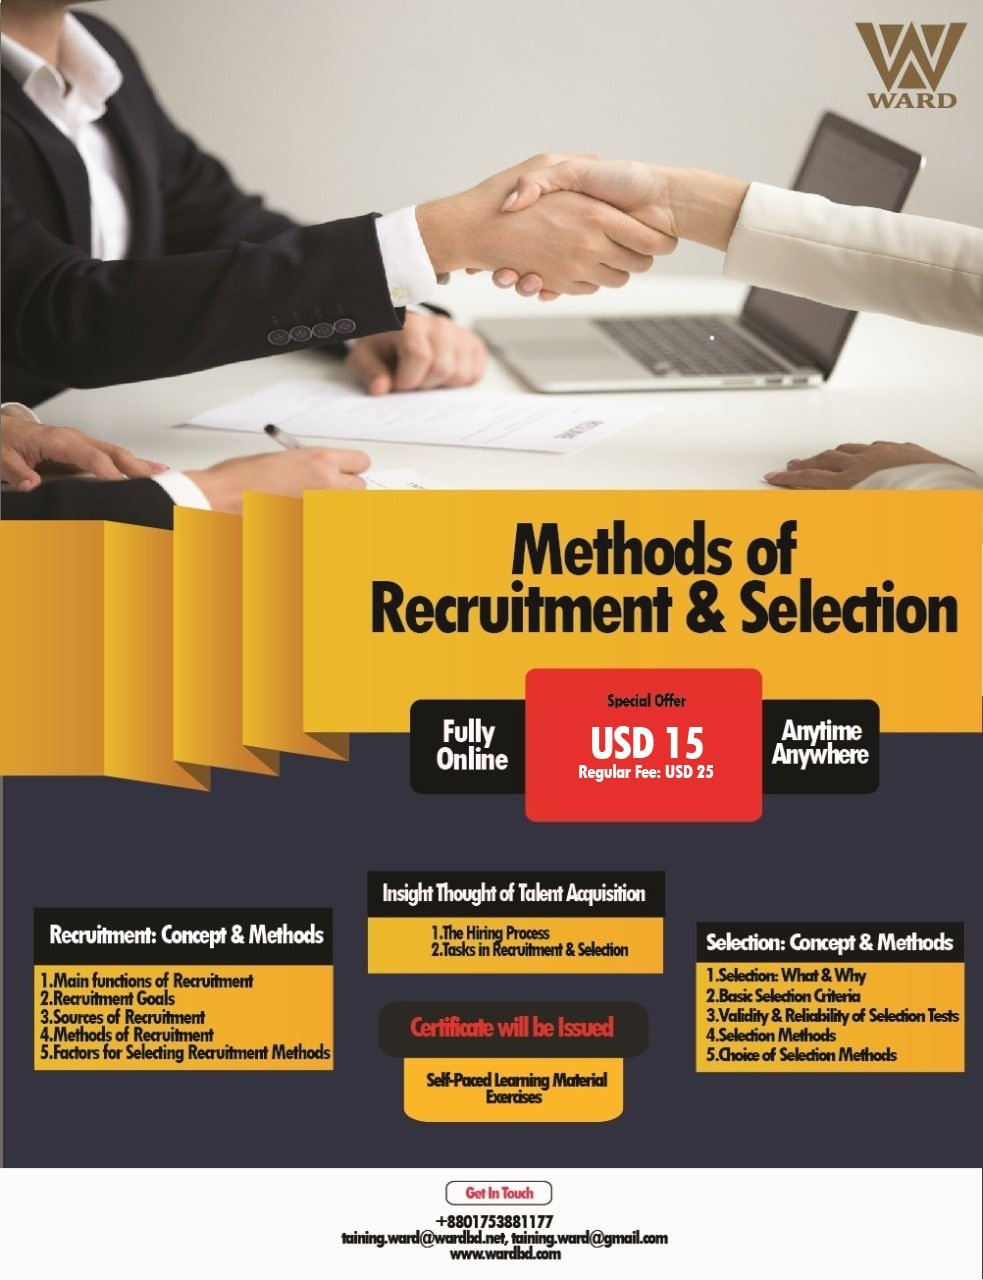 Methods of Recruitment and Selection